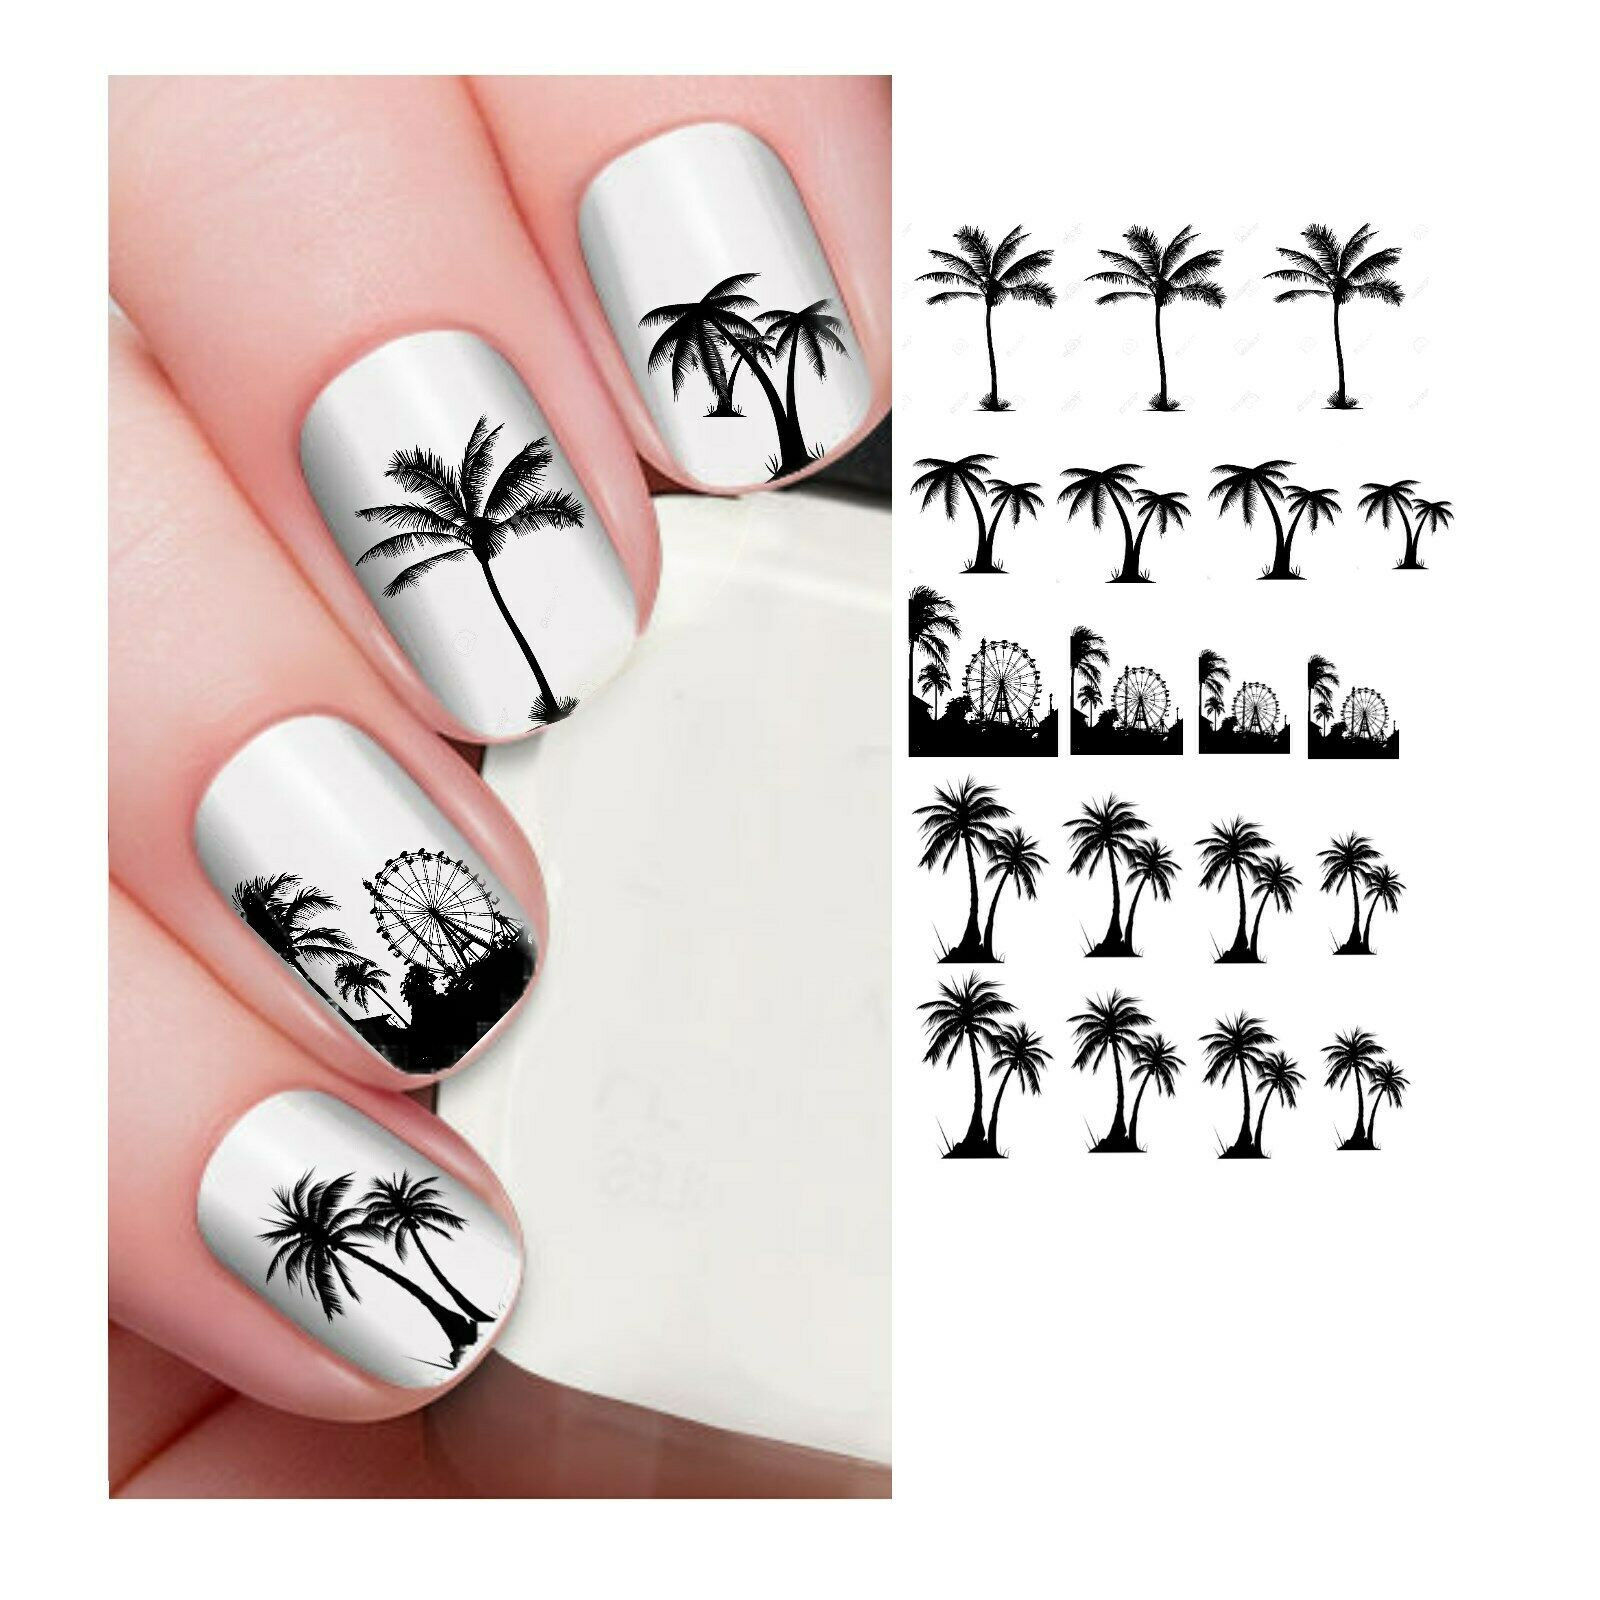 Summer Nail Decals Nail Art Water Decals Palm Trees Summer Etsy